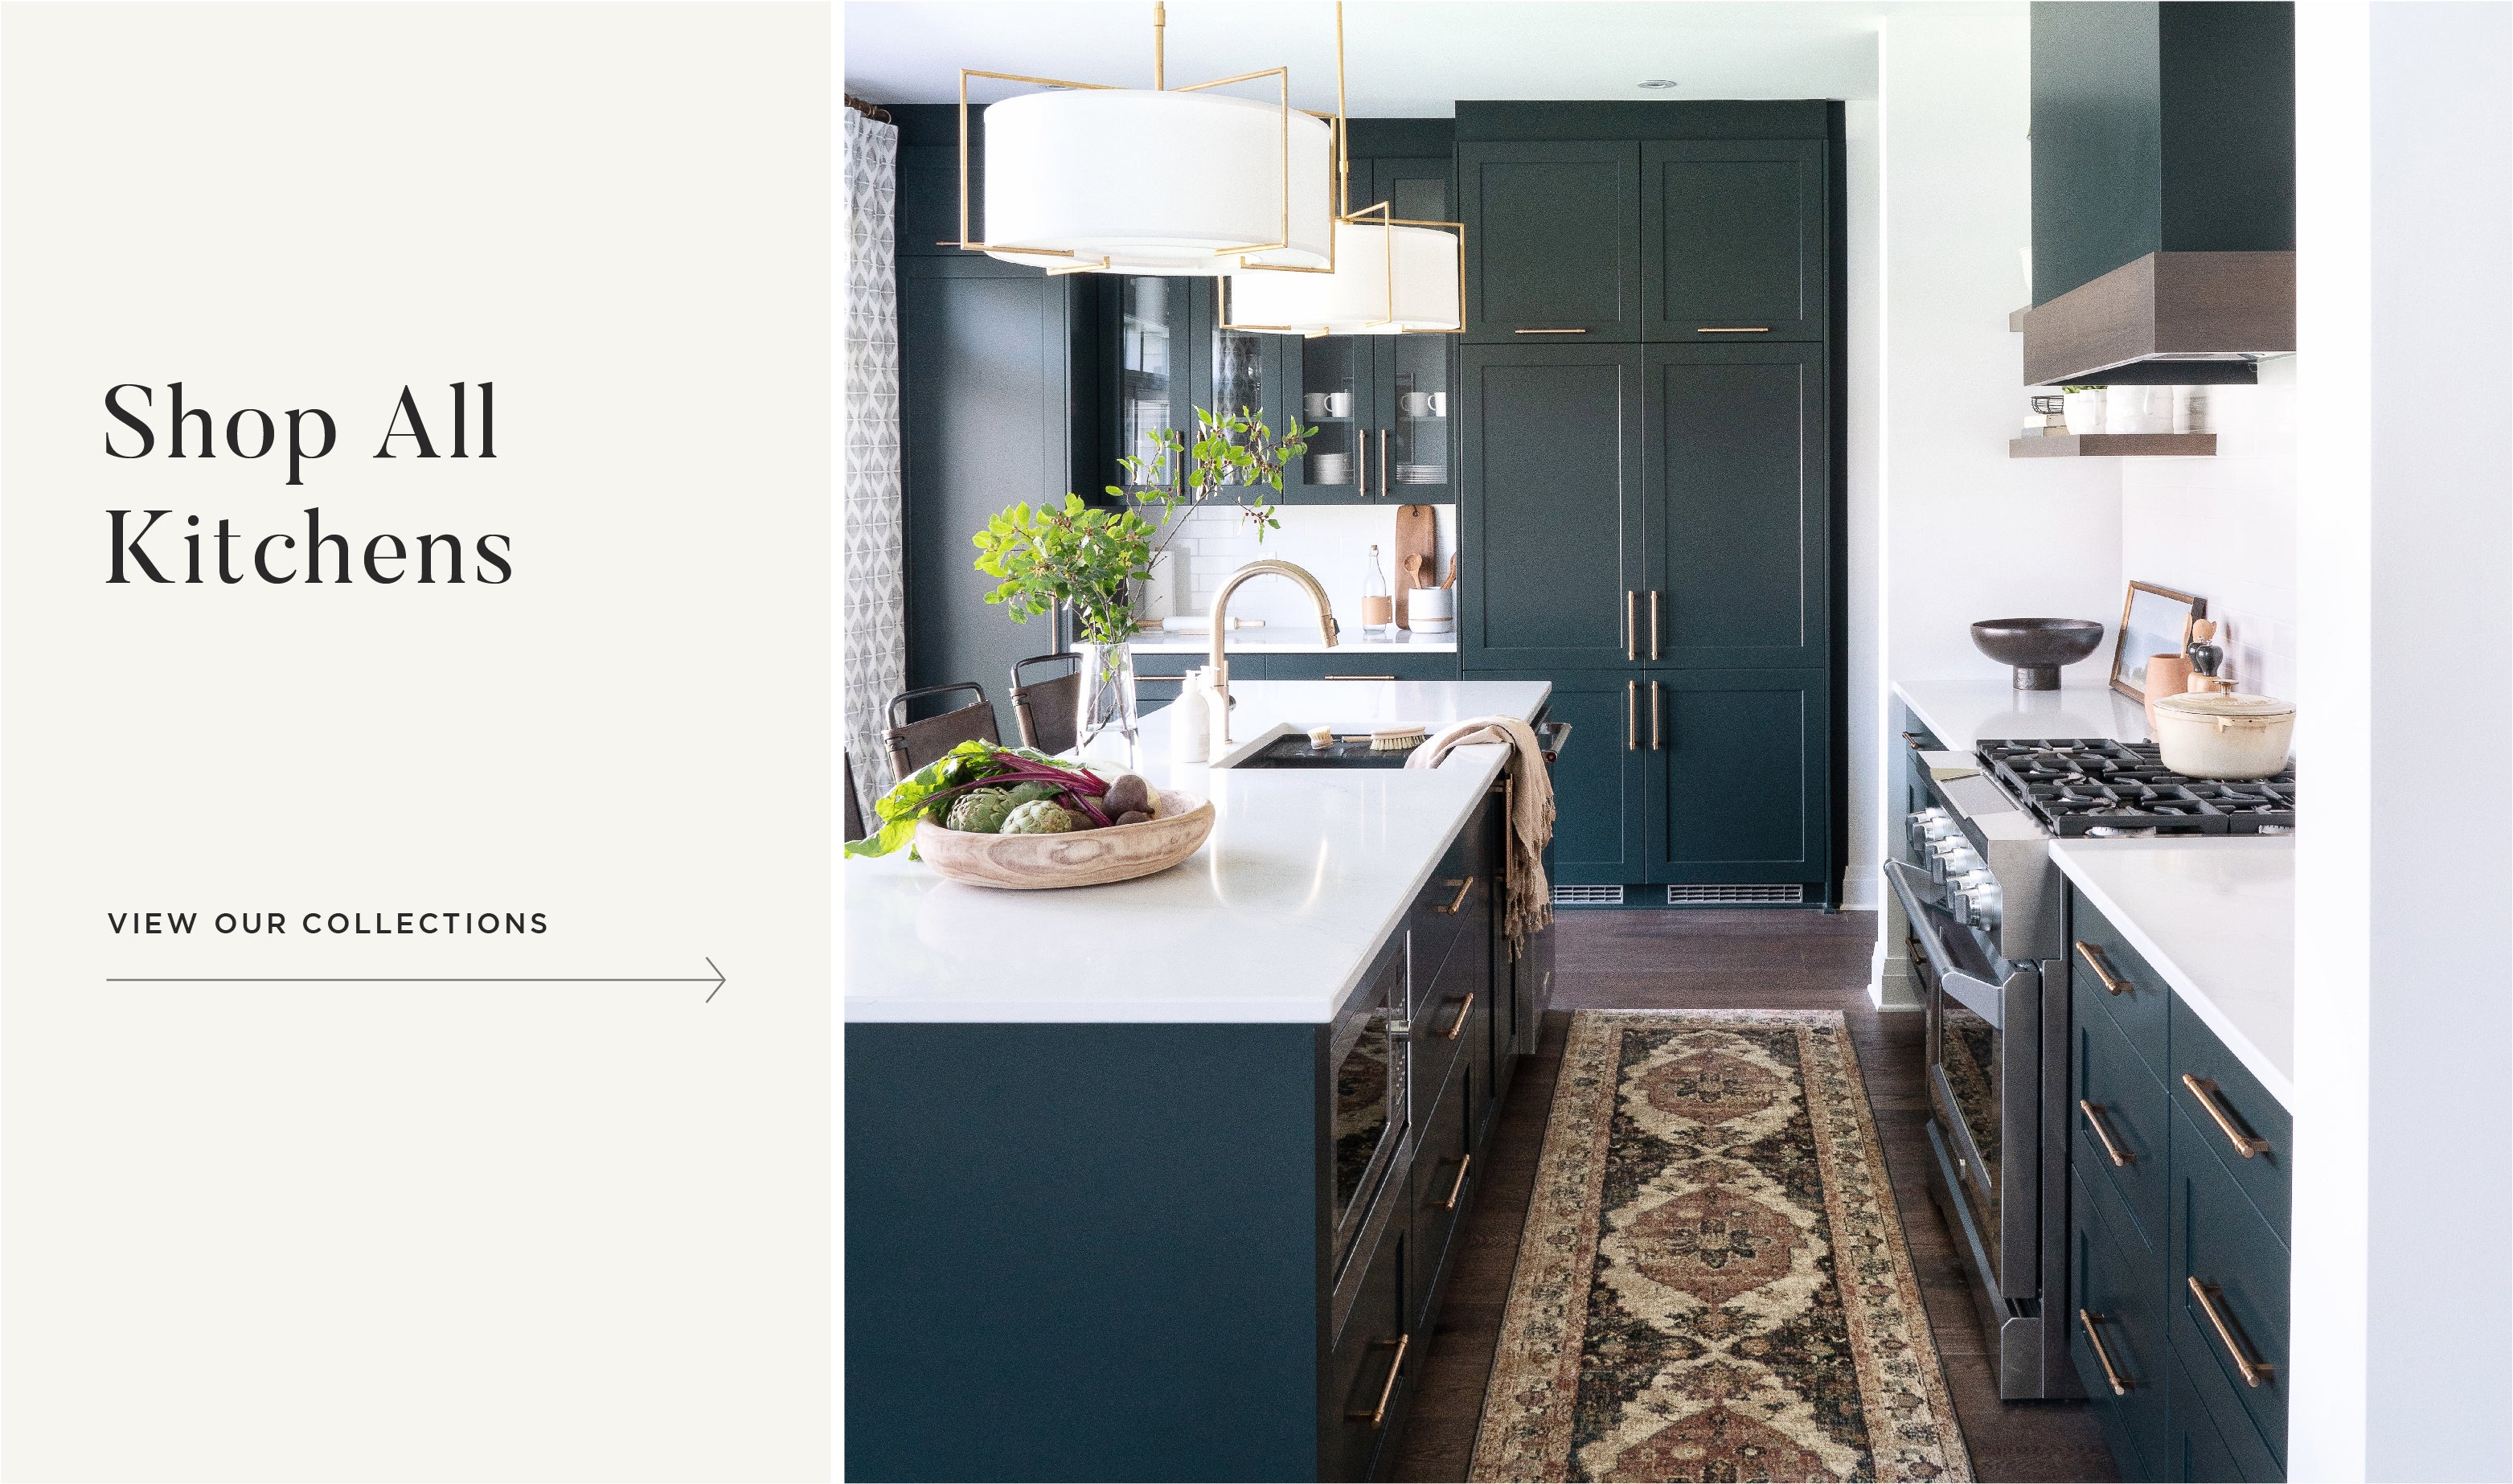 Shop All Kitchens